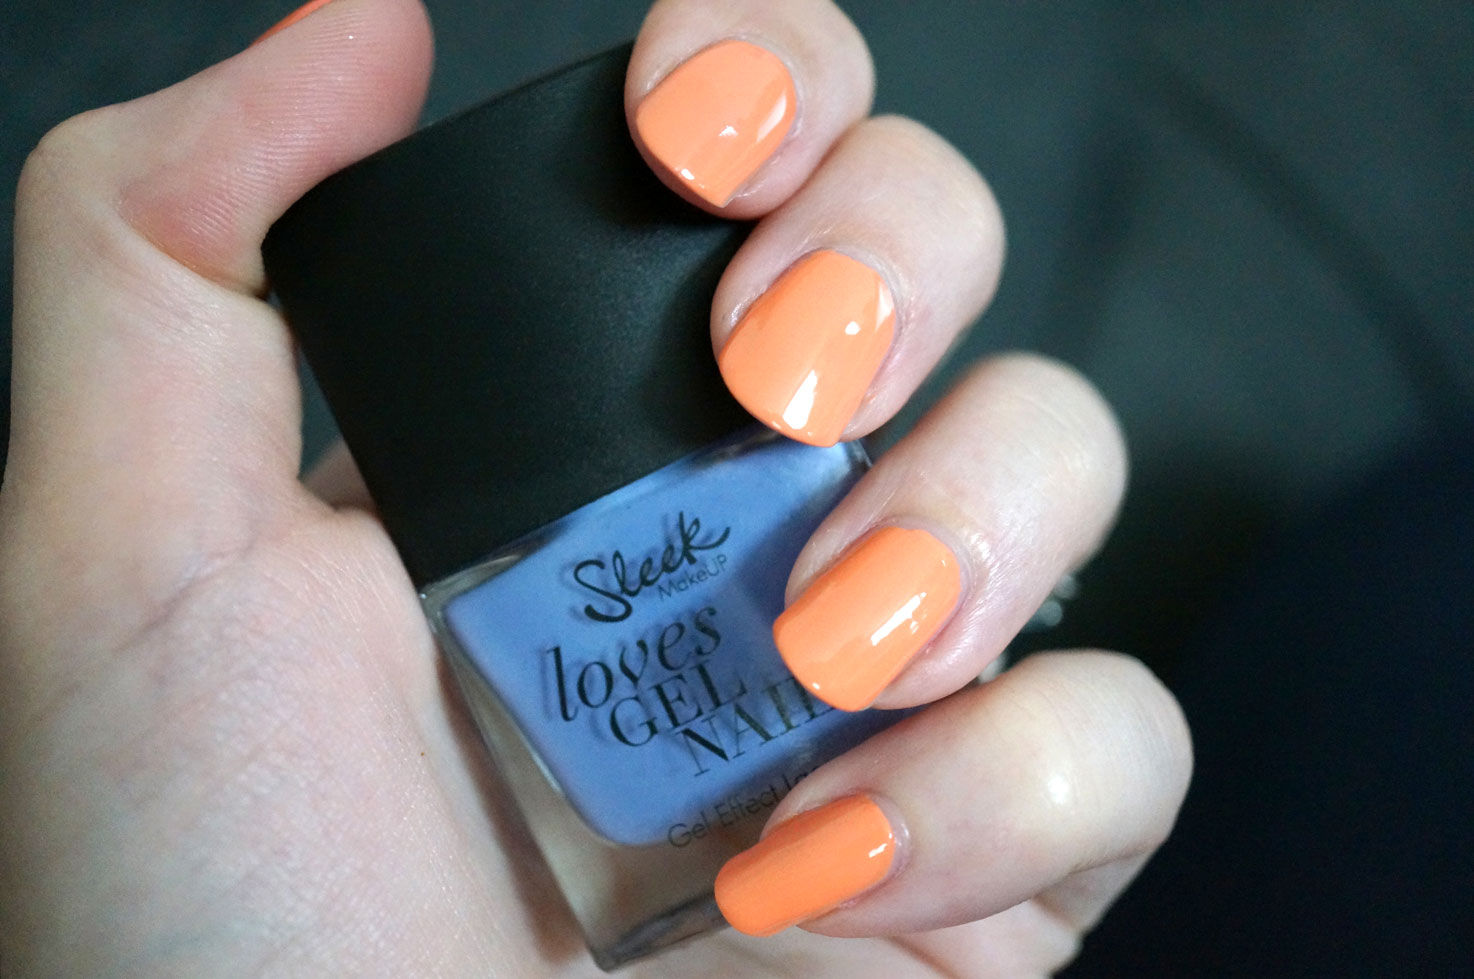 sleek gel nails review